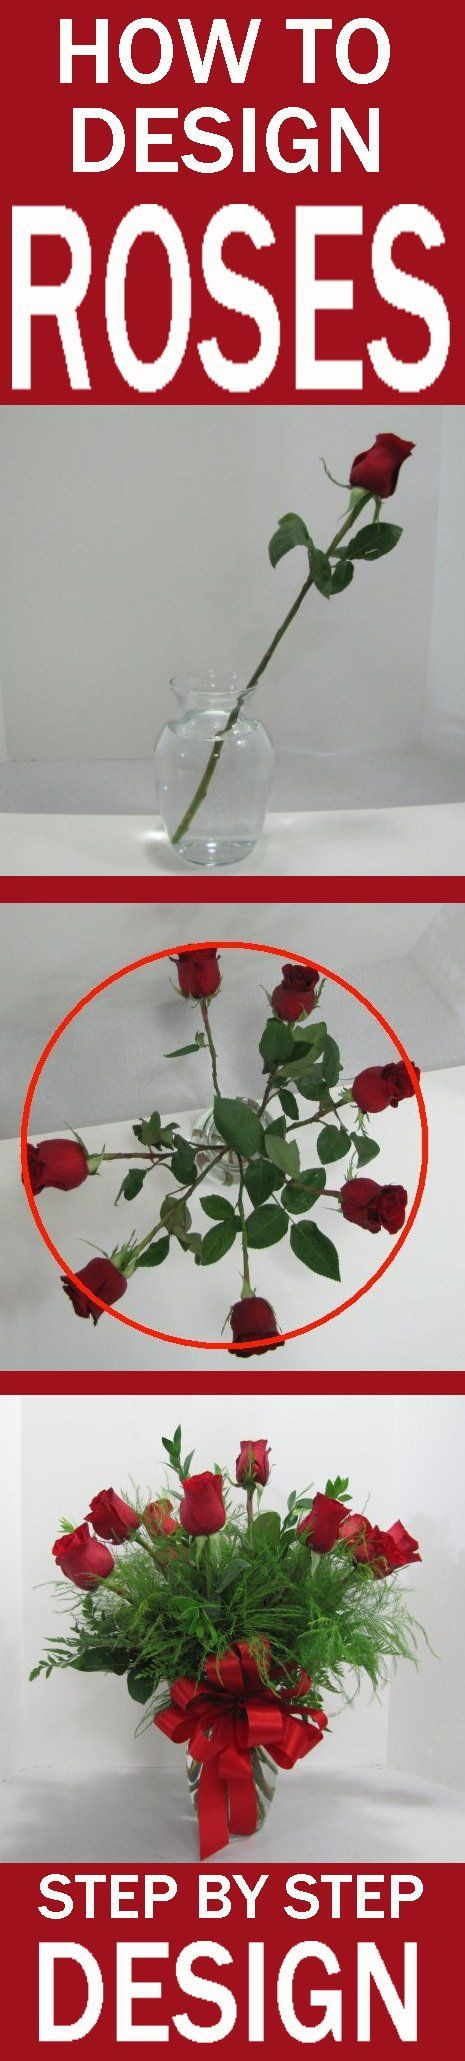 plastic cemetery vases with stakes 10 of 45 best wedding florals images on pinterest flower arrangement pertaining to how to design a rose vase easy flower tutorials learn how to create beautiful flower